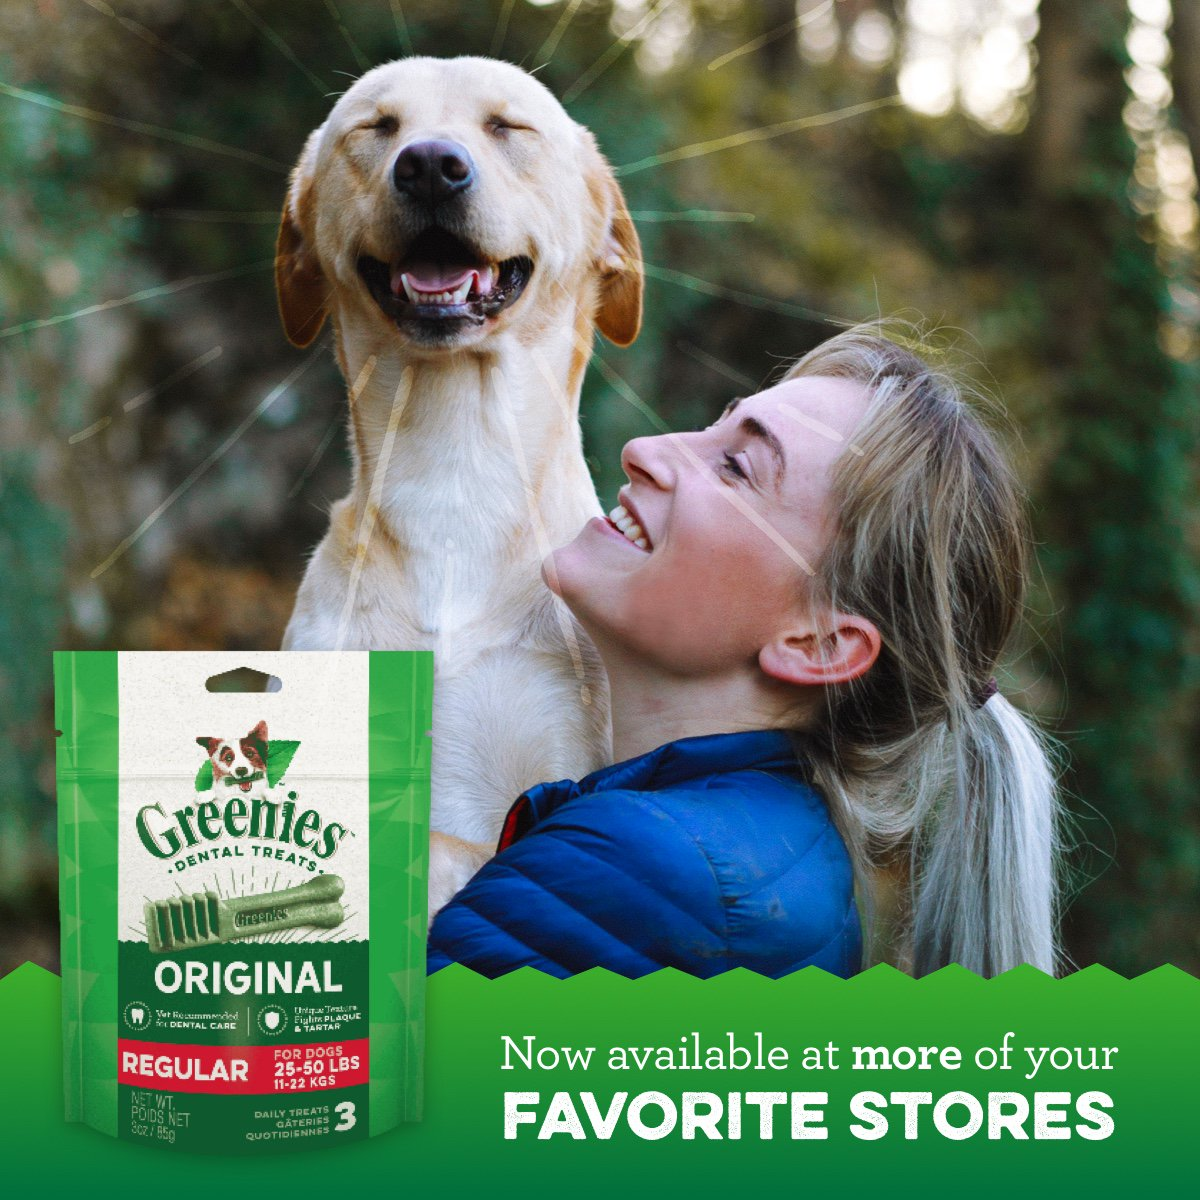 Now you can find GREENIES Dental Treats at more of your favorite stores. Grab a pouch of delicious GREENIES on your next trip to Wal-Mart, Target, Walgreens, Kroger, Meijer and more.  #GREENIES #DogTreats https://t.co/FMctPX86Q6 https://t.co/8qWspY37SB